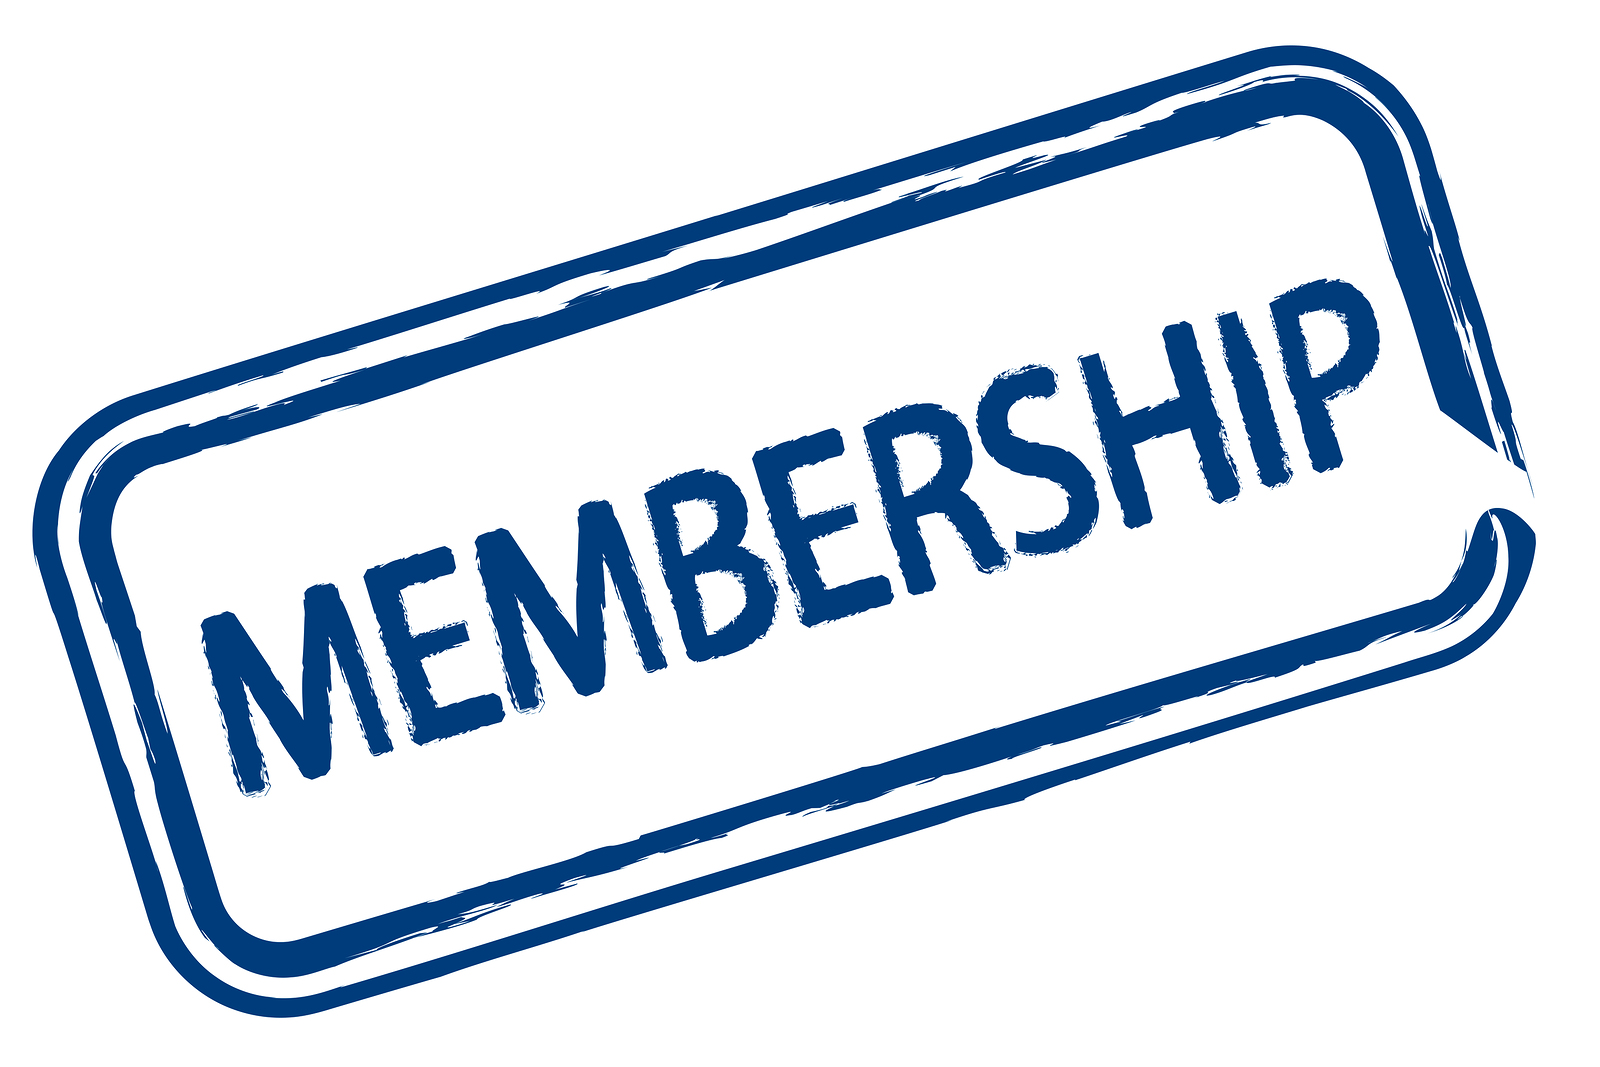 New Club Membership Applications Are Now Being Accepted - Apply Now!